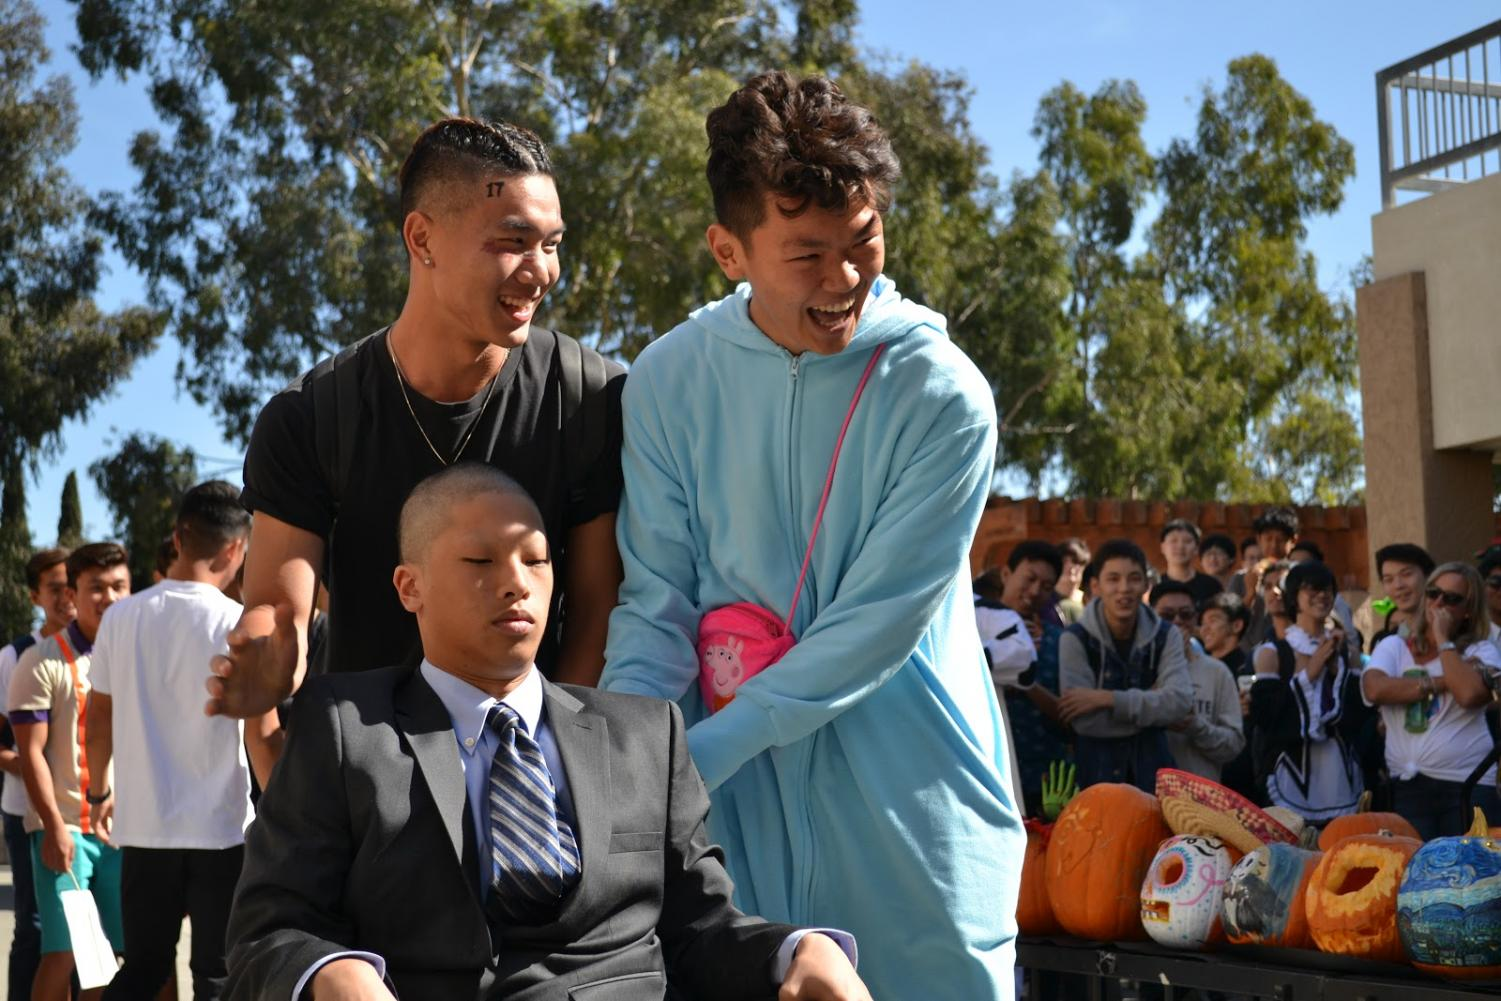 From left, juniors Ricky Kuo, Leo Lu wheel Christopher Lin, dressed as Professor X from the